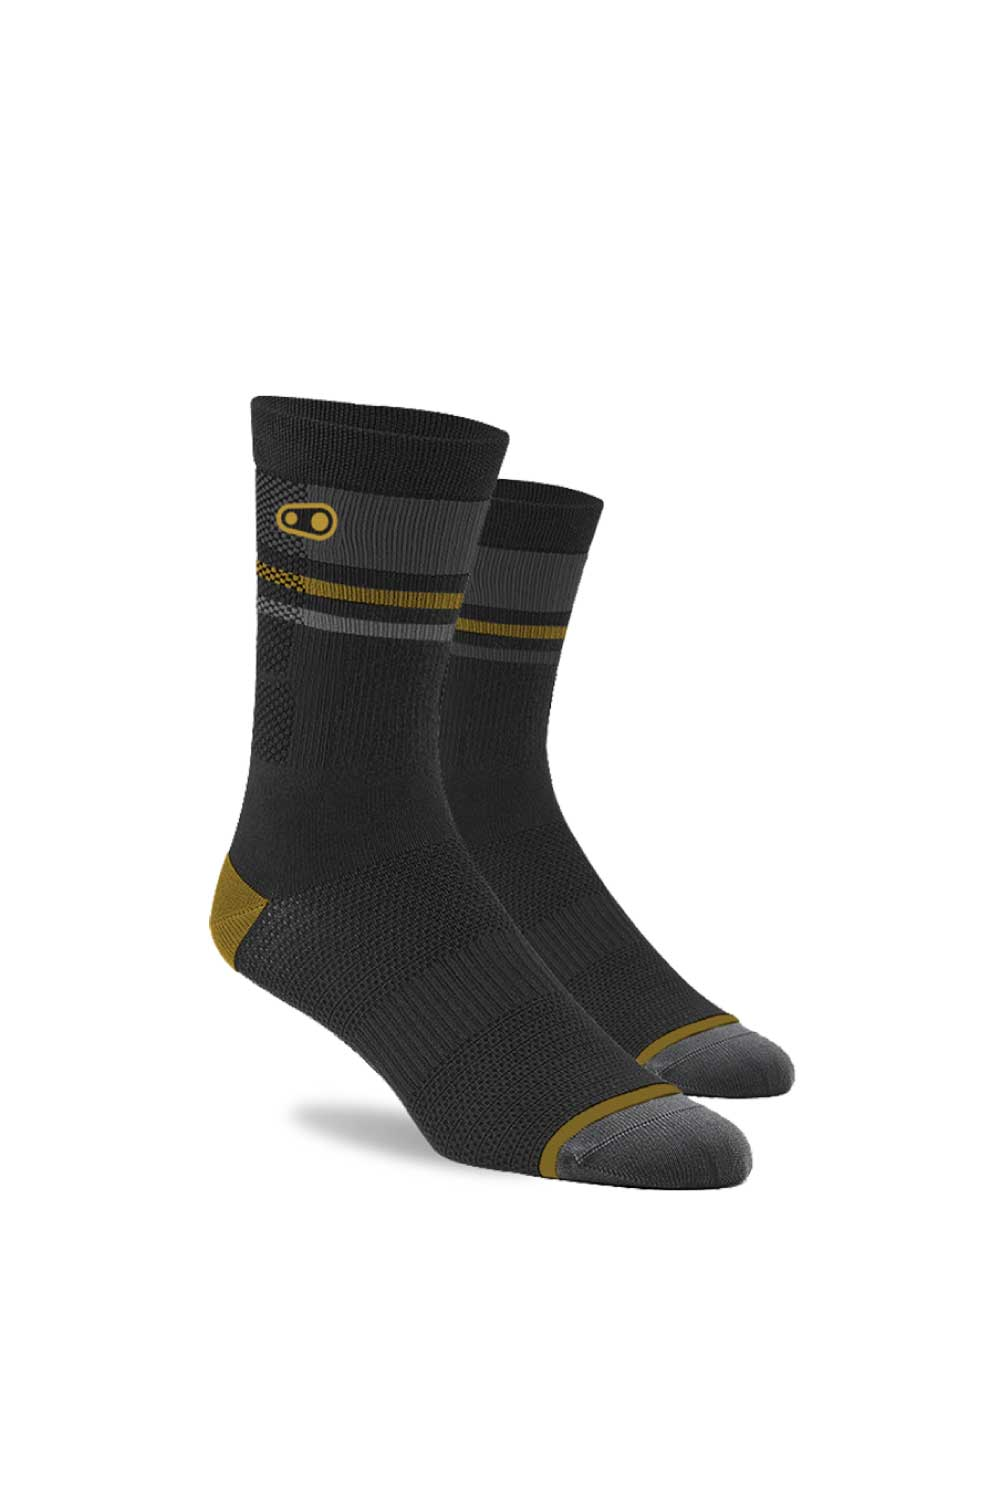 Crank Brothers X 100% MTB Trail Bike Socks